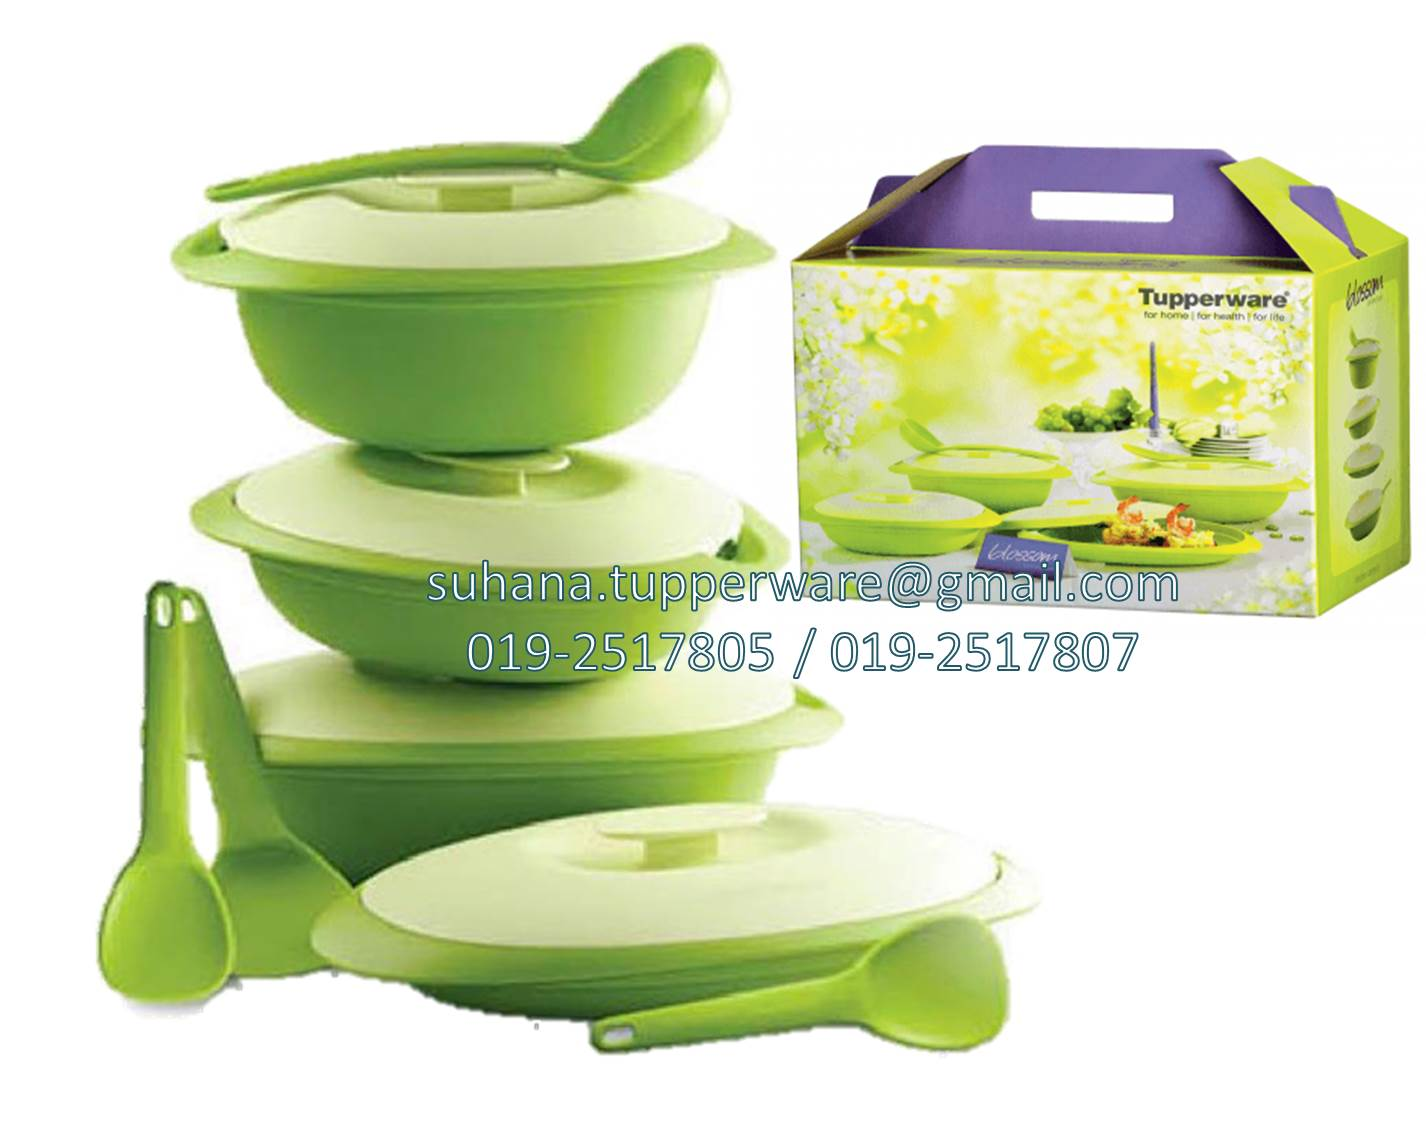 Tupperware Brands Malaysia Online Catalogue Collection ...